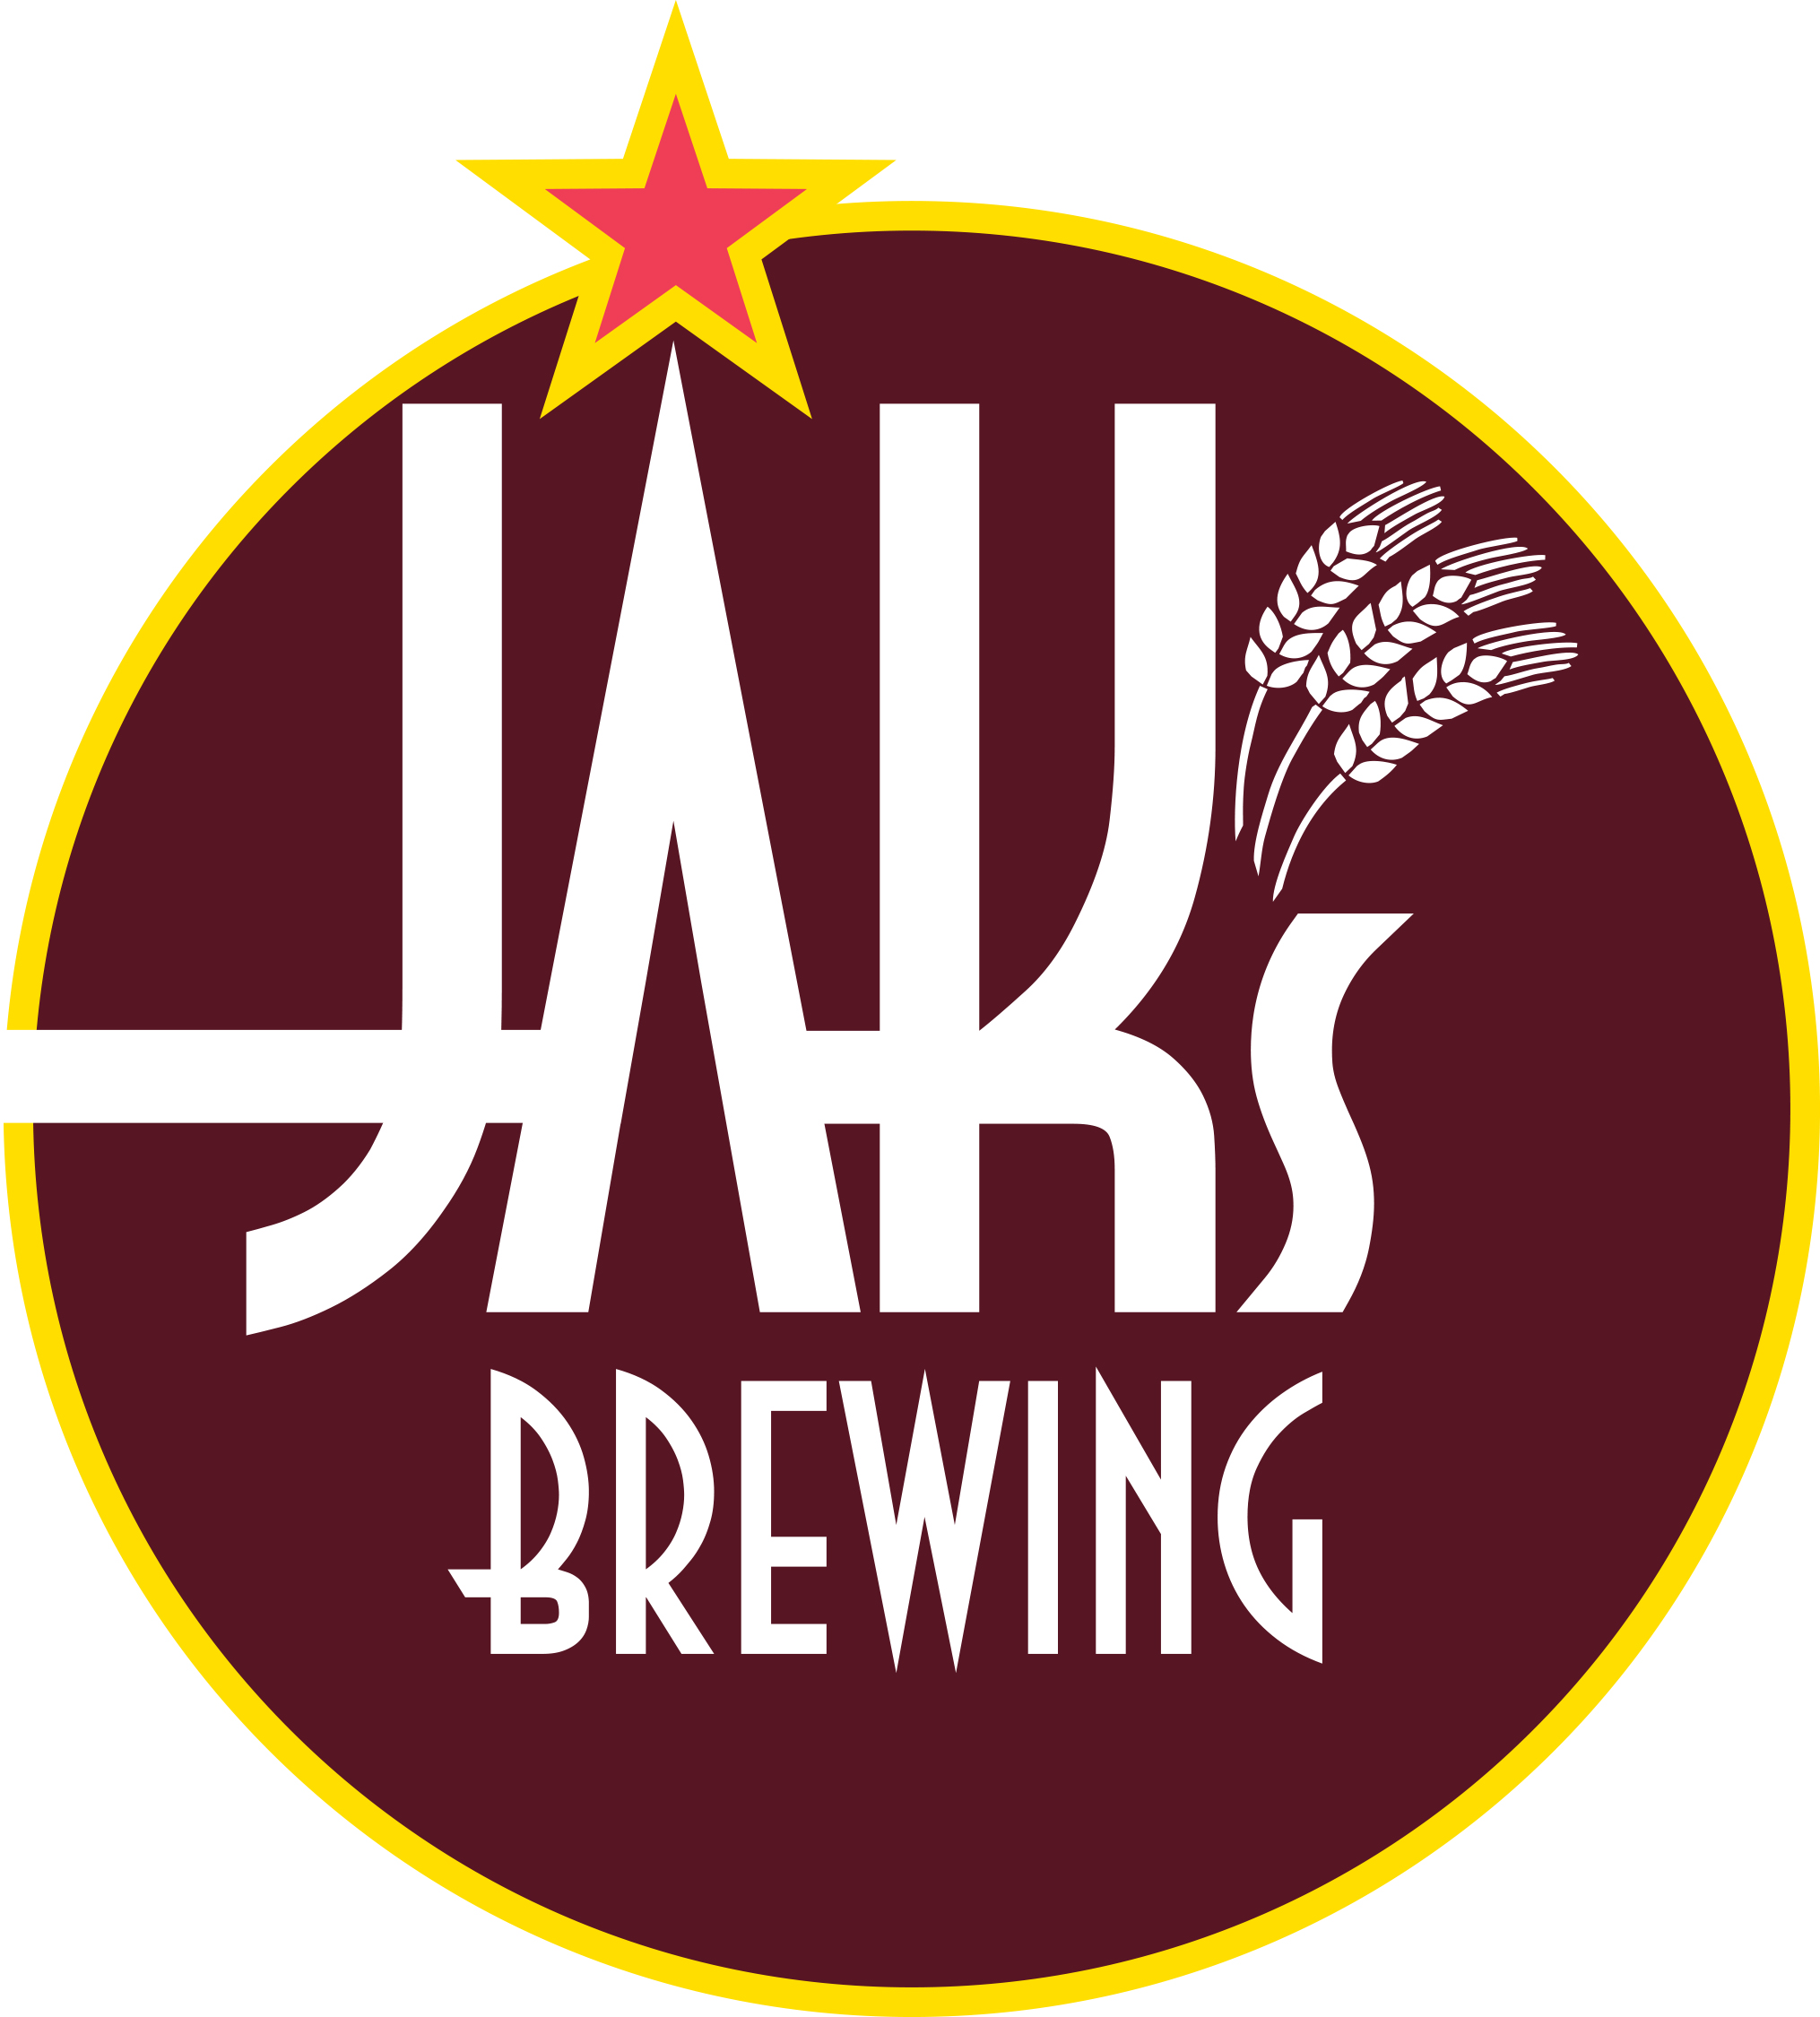 JAKs Brewing v1.5.np.jpg